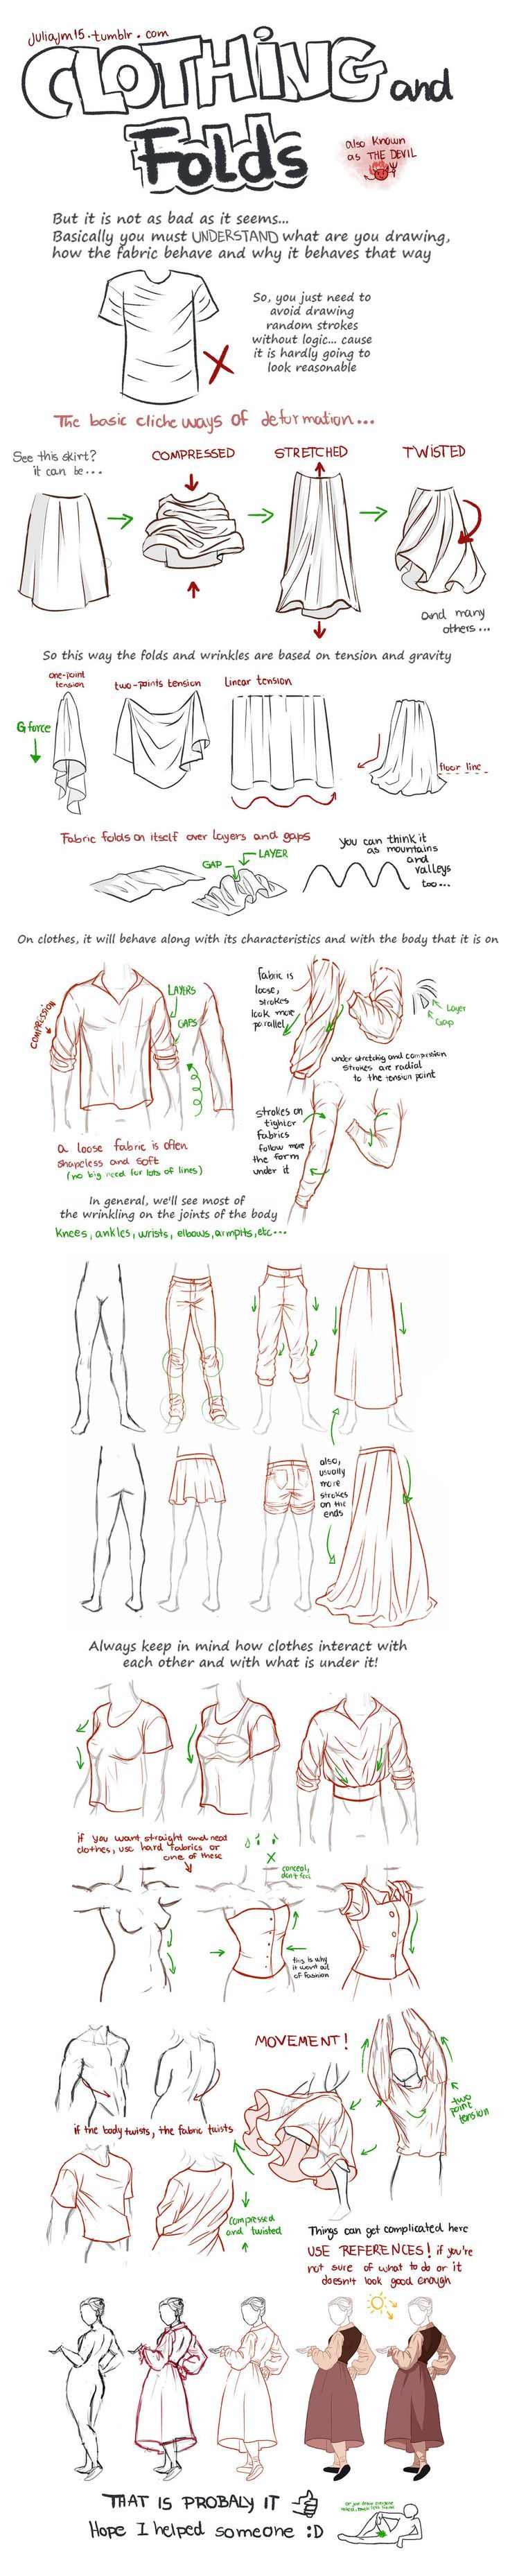 Illustration Showing How To Draw Fabric Folds And Drape Drawing Folds And  Wrinkles In Fabric